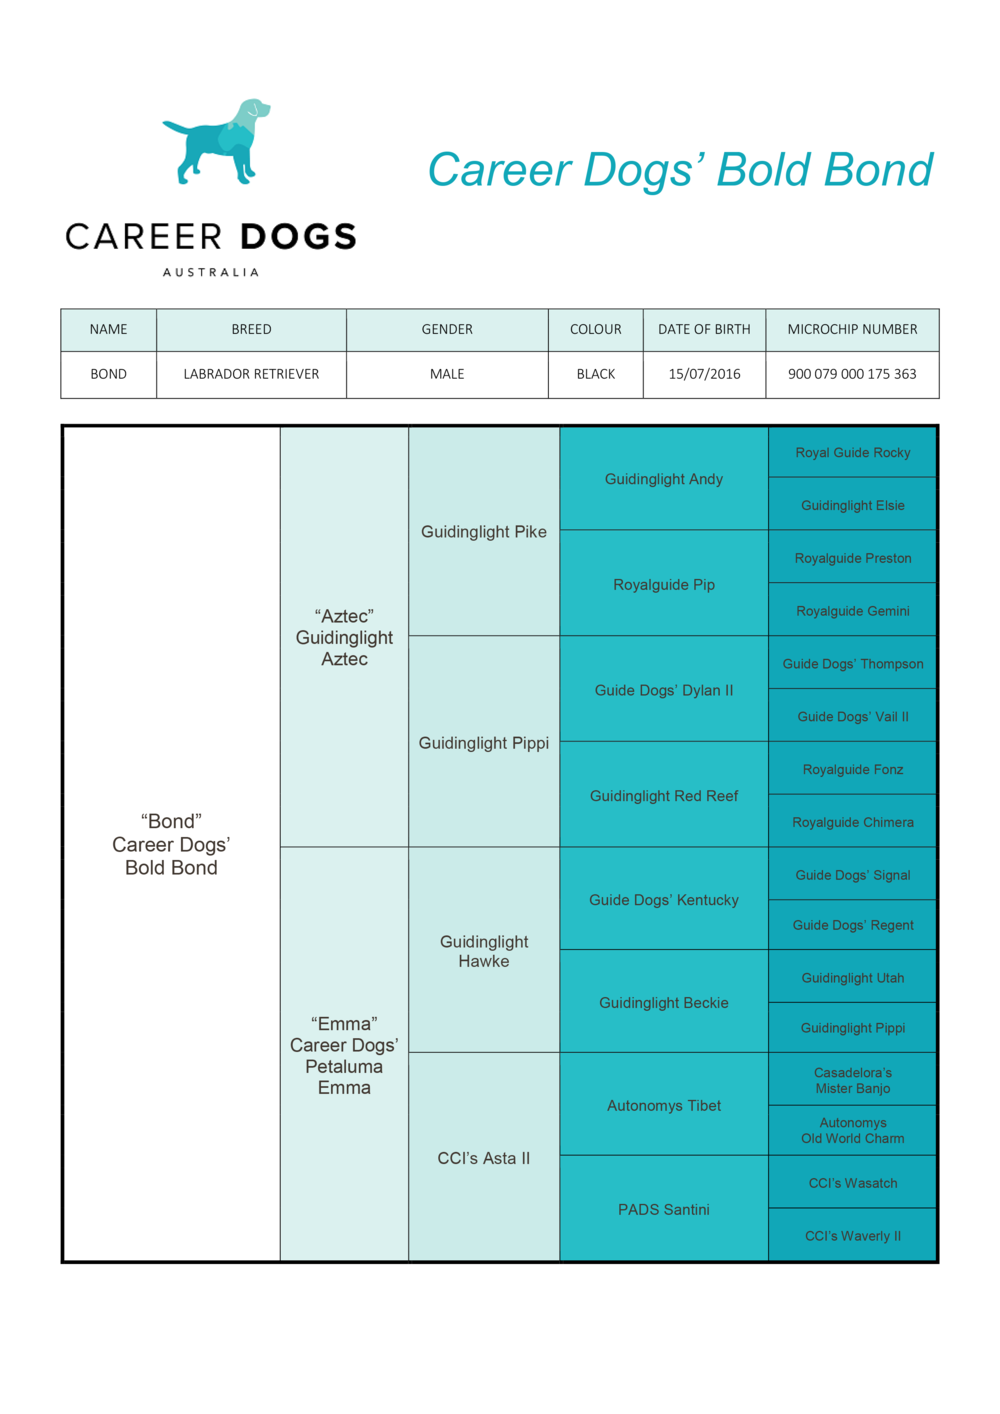 Bond_Pedigree_Career-Dogs'-Bold-Bond.png